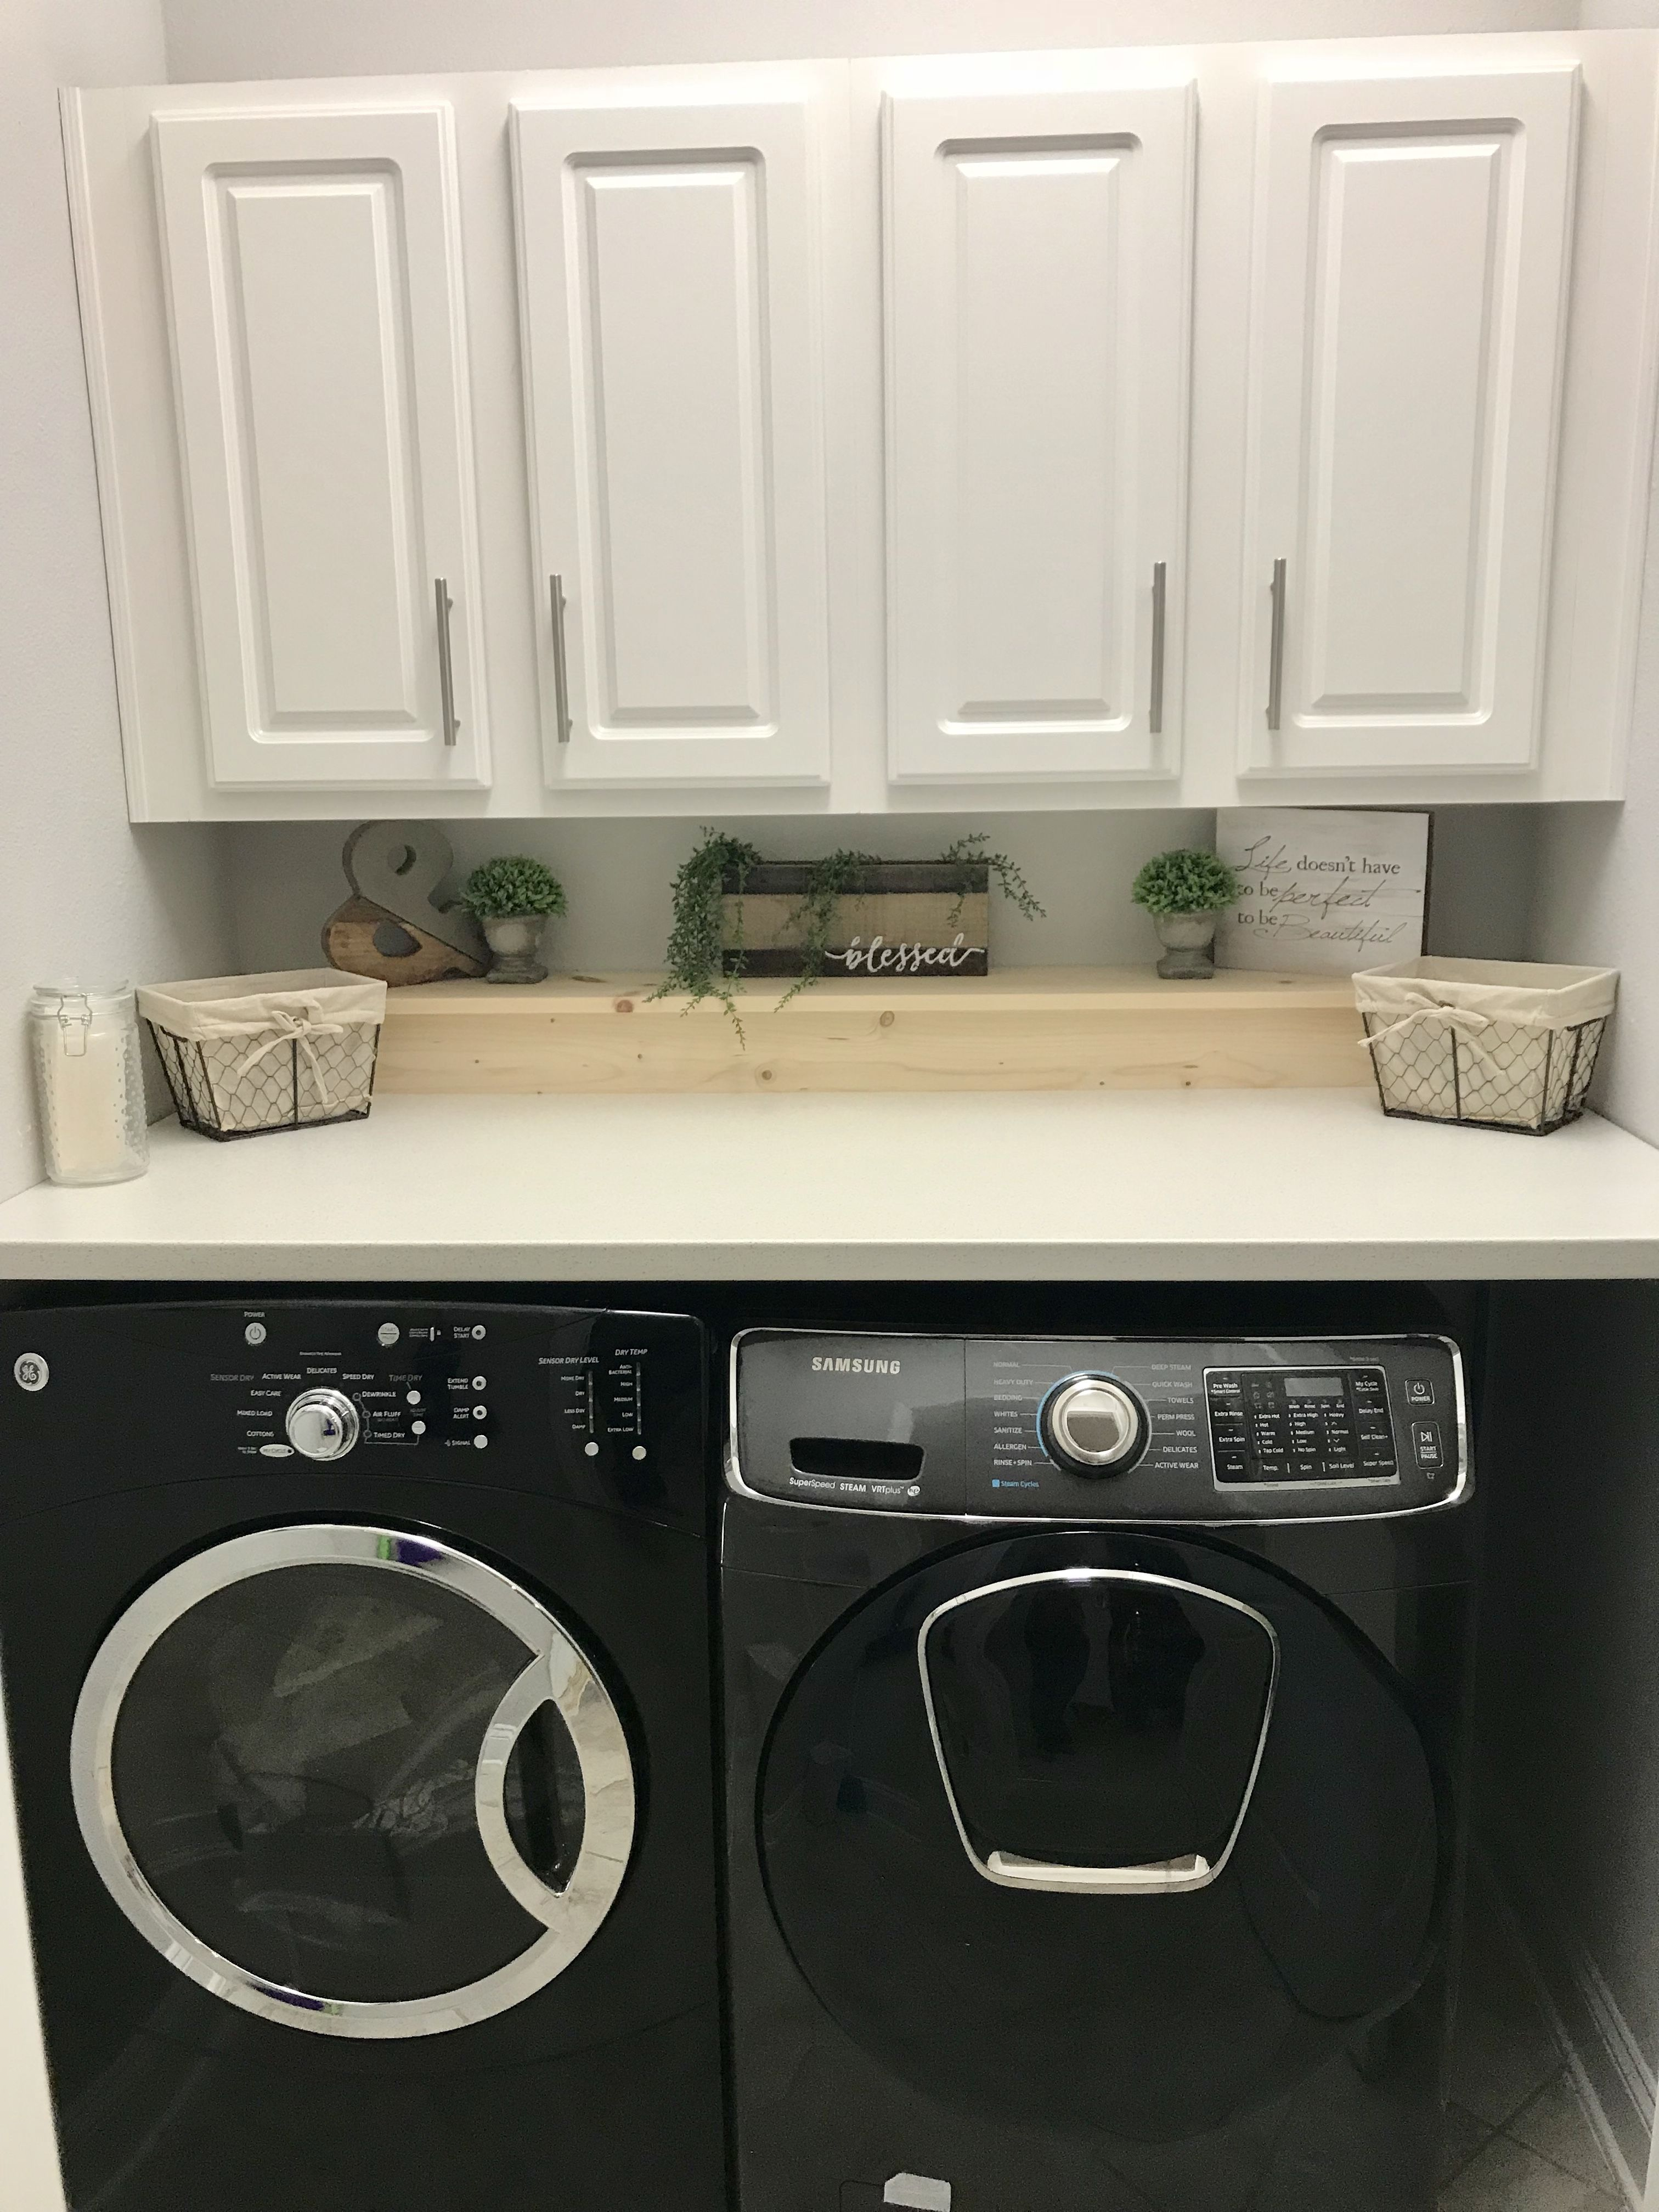 Ikea Countertop And Handmade Removable Shelf To Hide The Plumbing